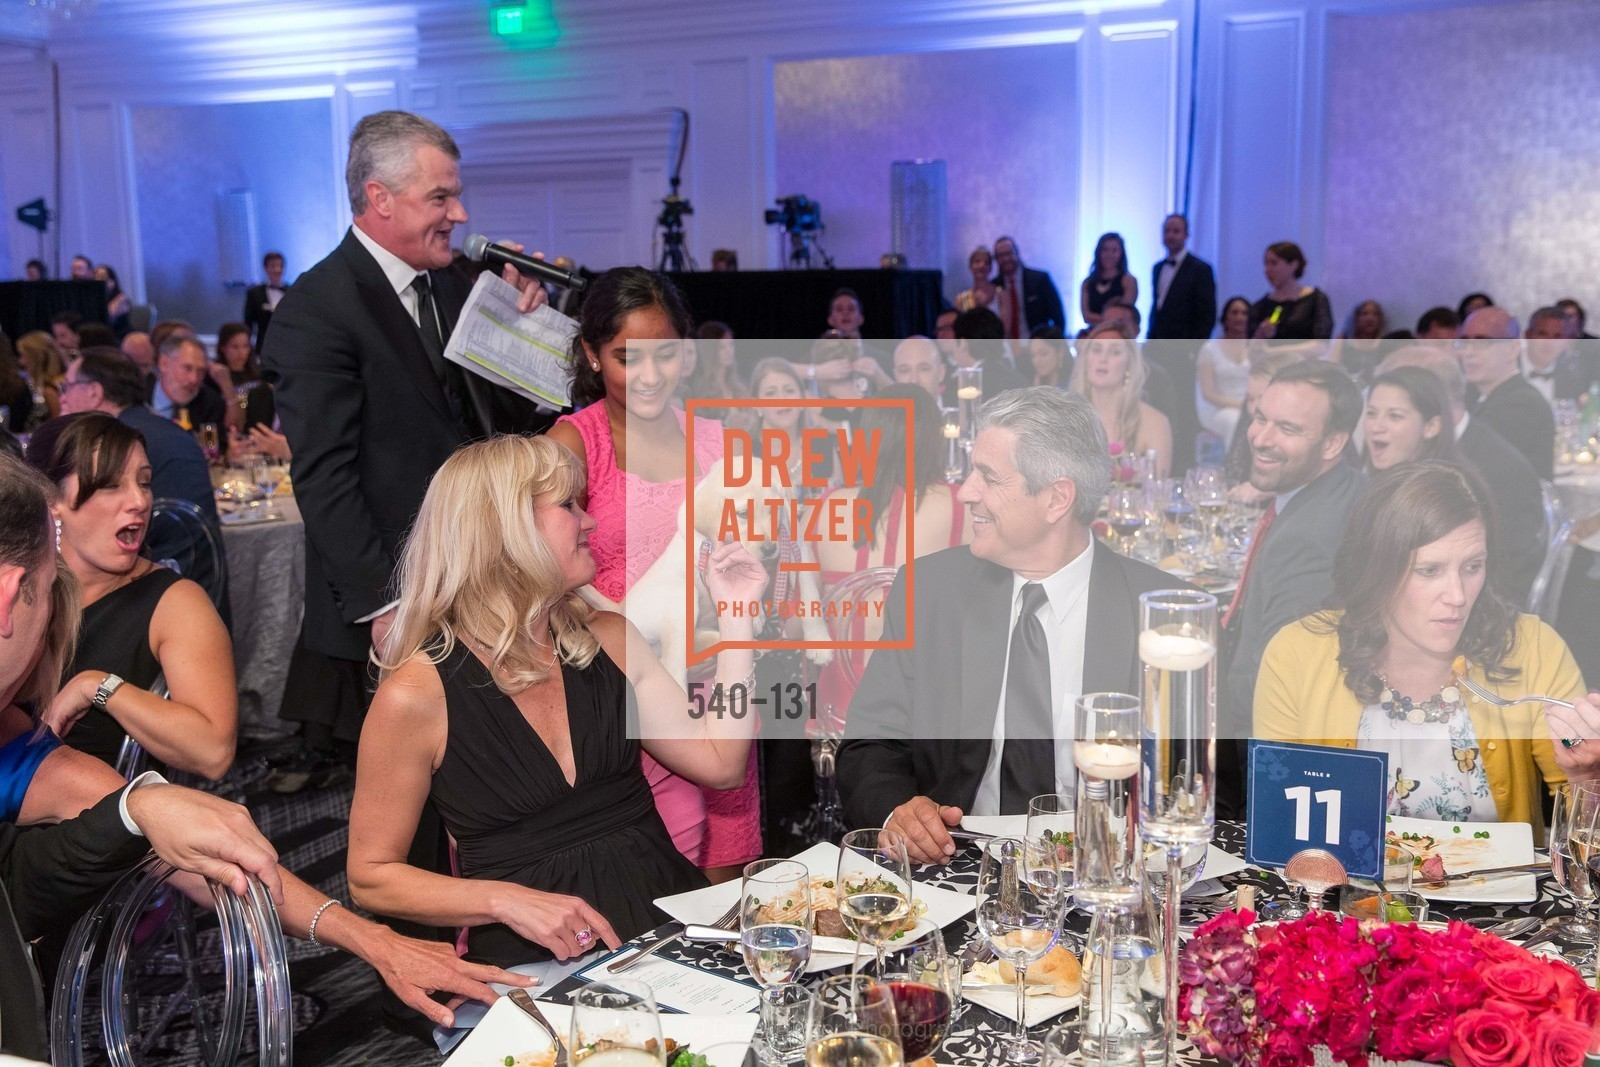 Extras, JUVENILE DIABETES RESEARCH FOUNDATION  Hope Gala, May 29th, 2015, Photo